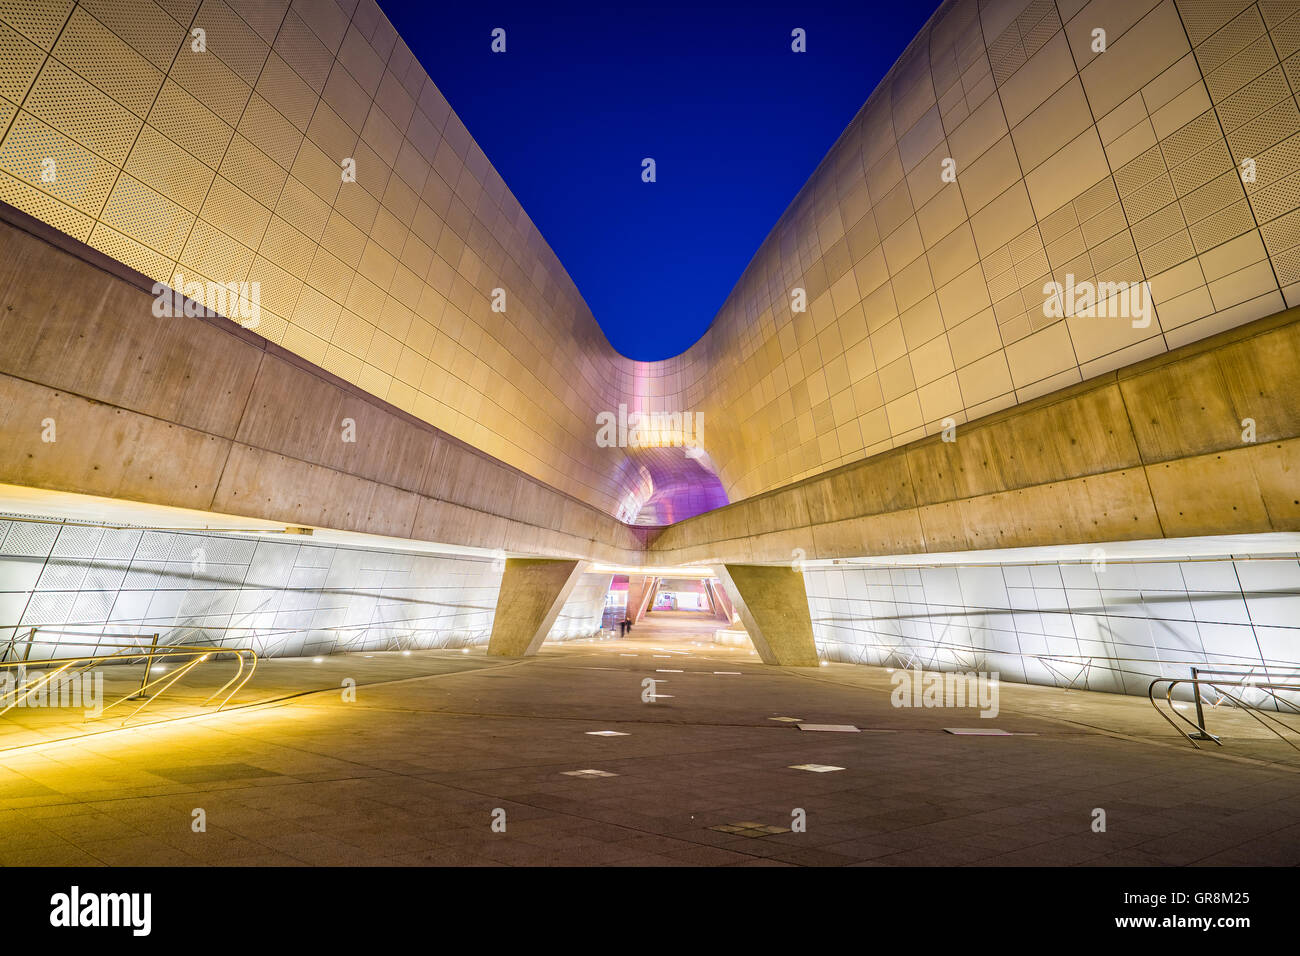 Seoul, South Korea- December 7, 2015: The Dongdaemun Design Plaza, also called the DDP, is a major urban development - Stock Image